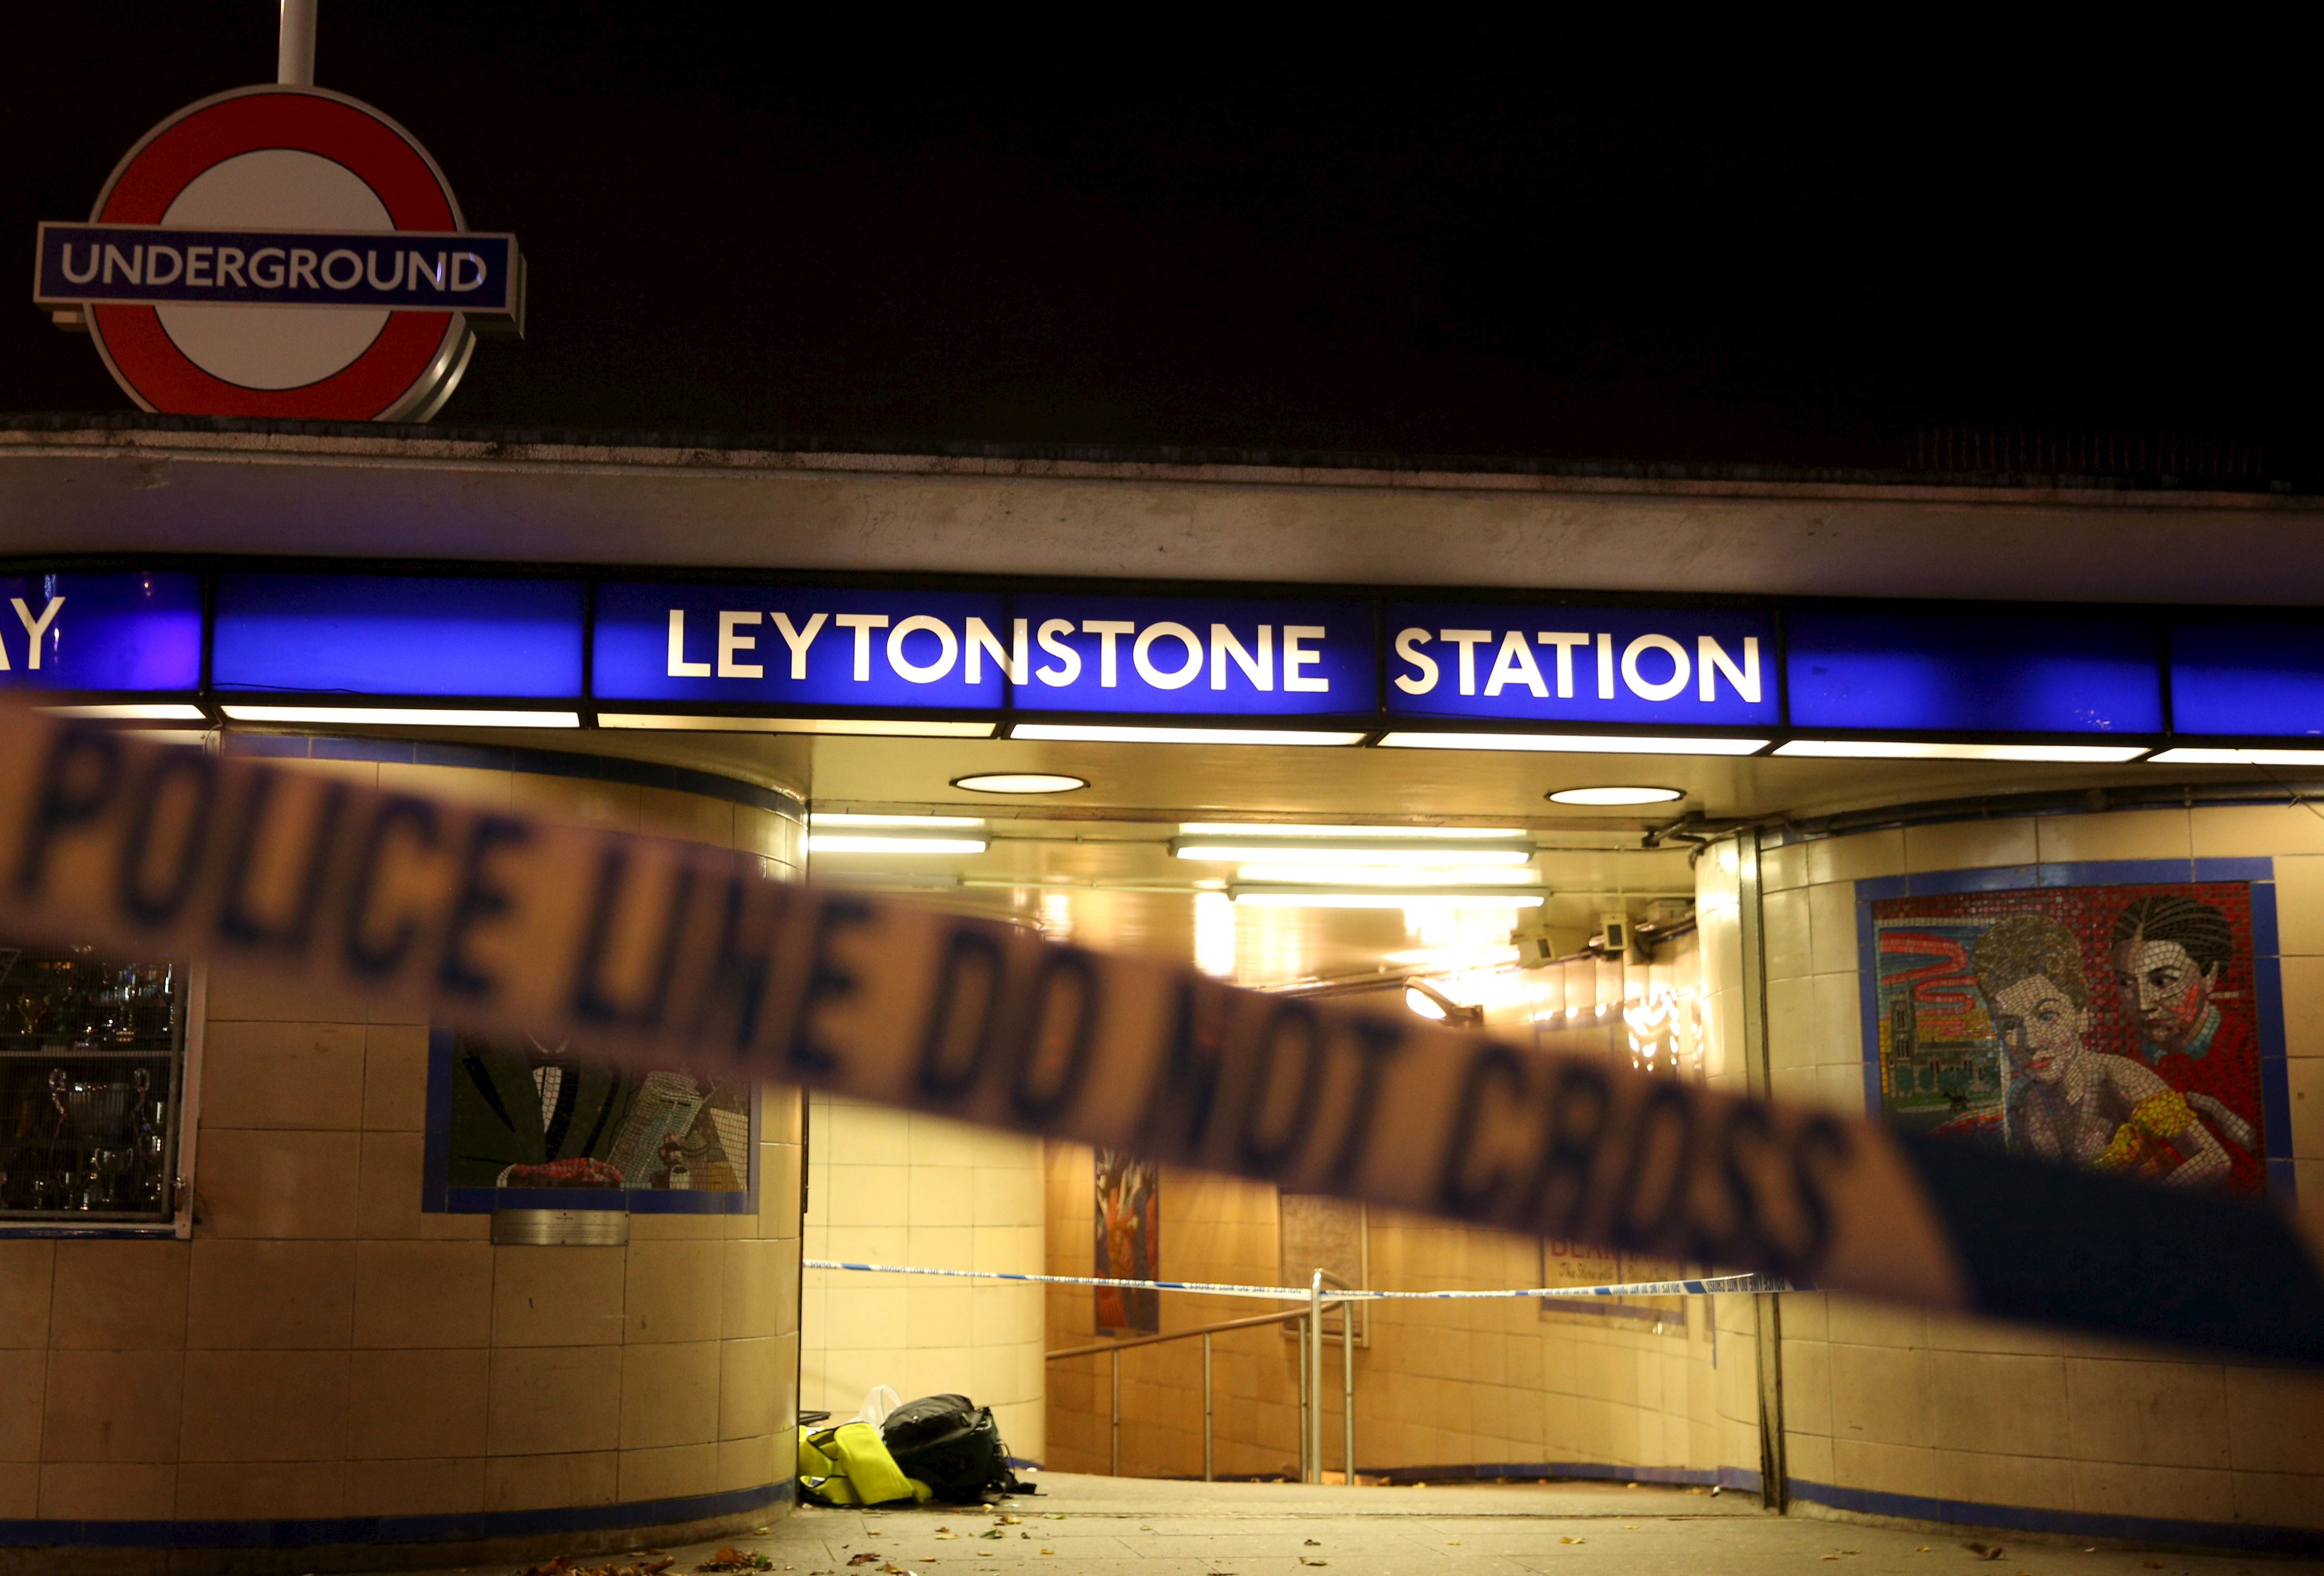 Police tape is seen at a crime scene at Leytonstone underground station in East London on Dec. 6, 2015. Police were called to reports of a number of people stabbed at the station in East London and a man threatening other people with a knife